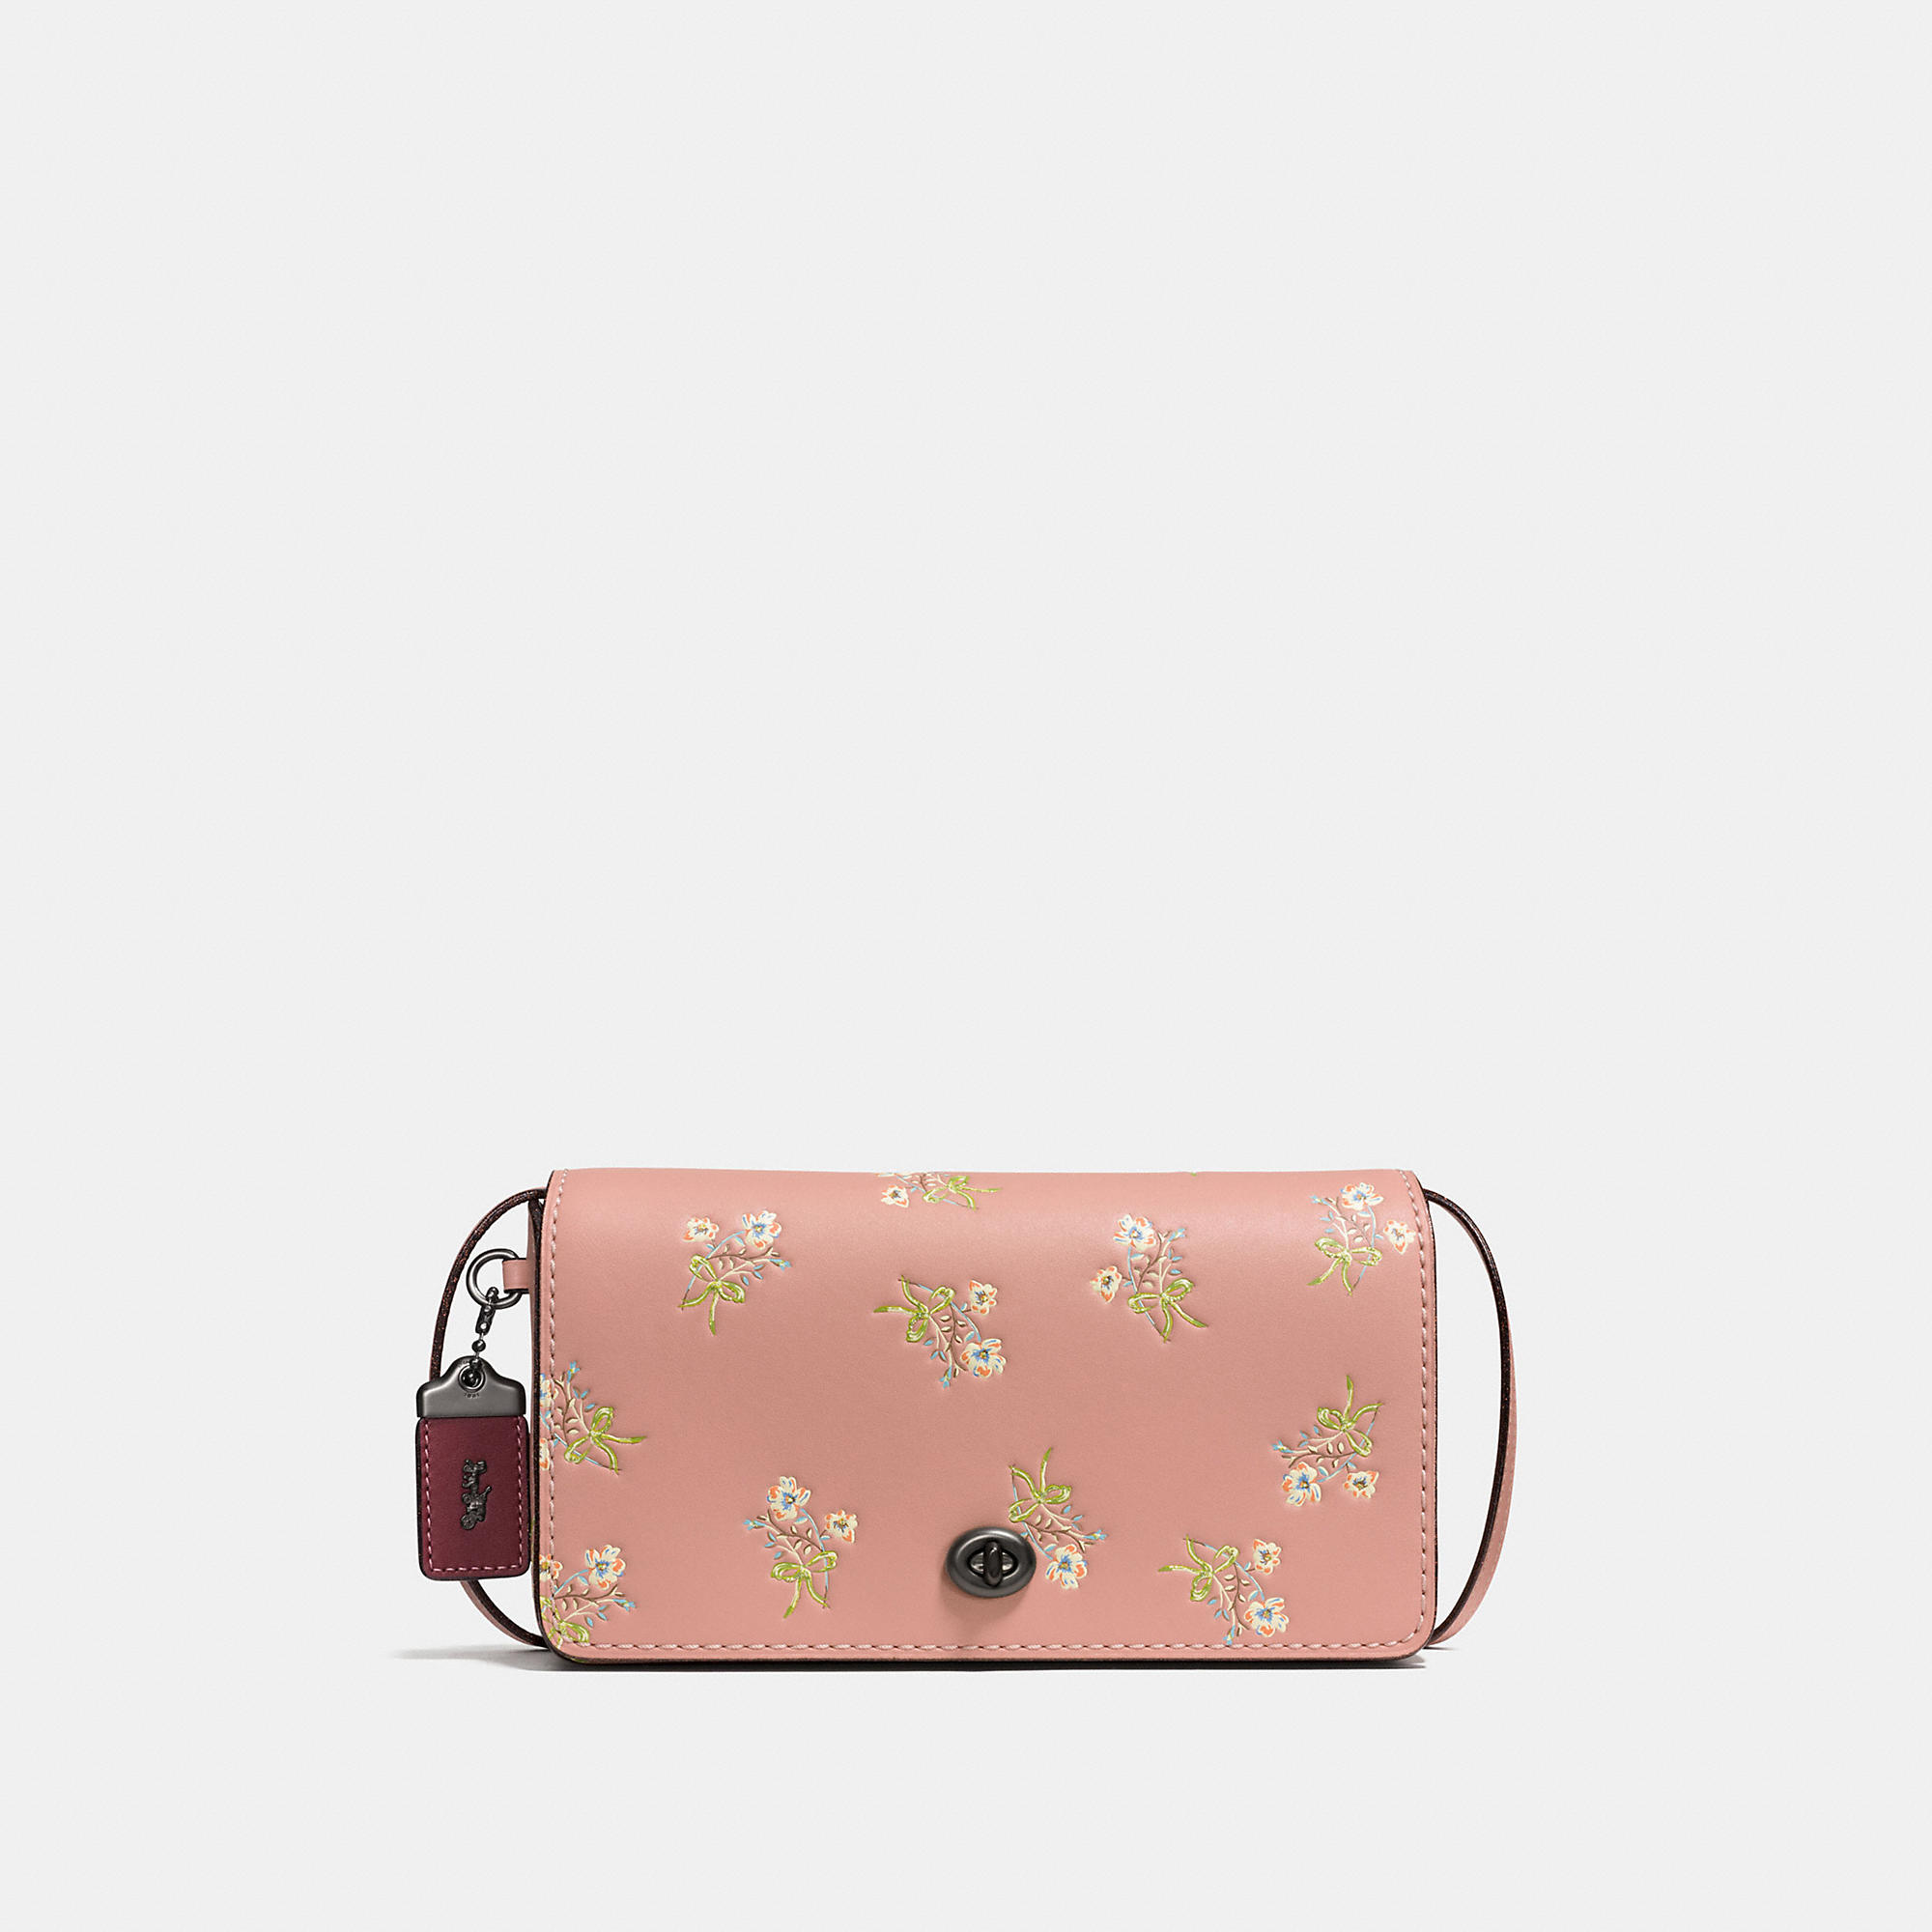 Coach Dinky In Glovetanned Leather With Floral Bow Print